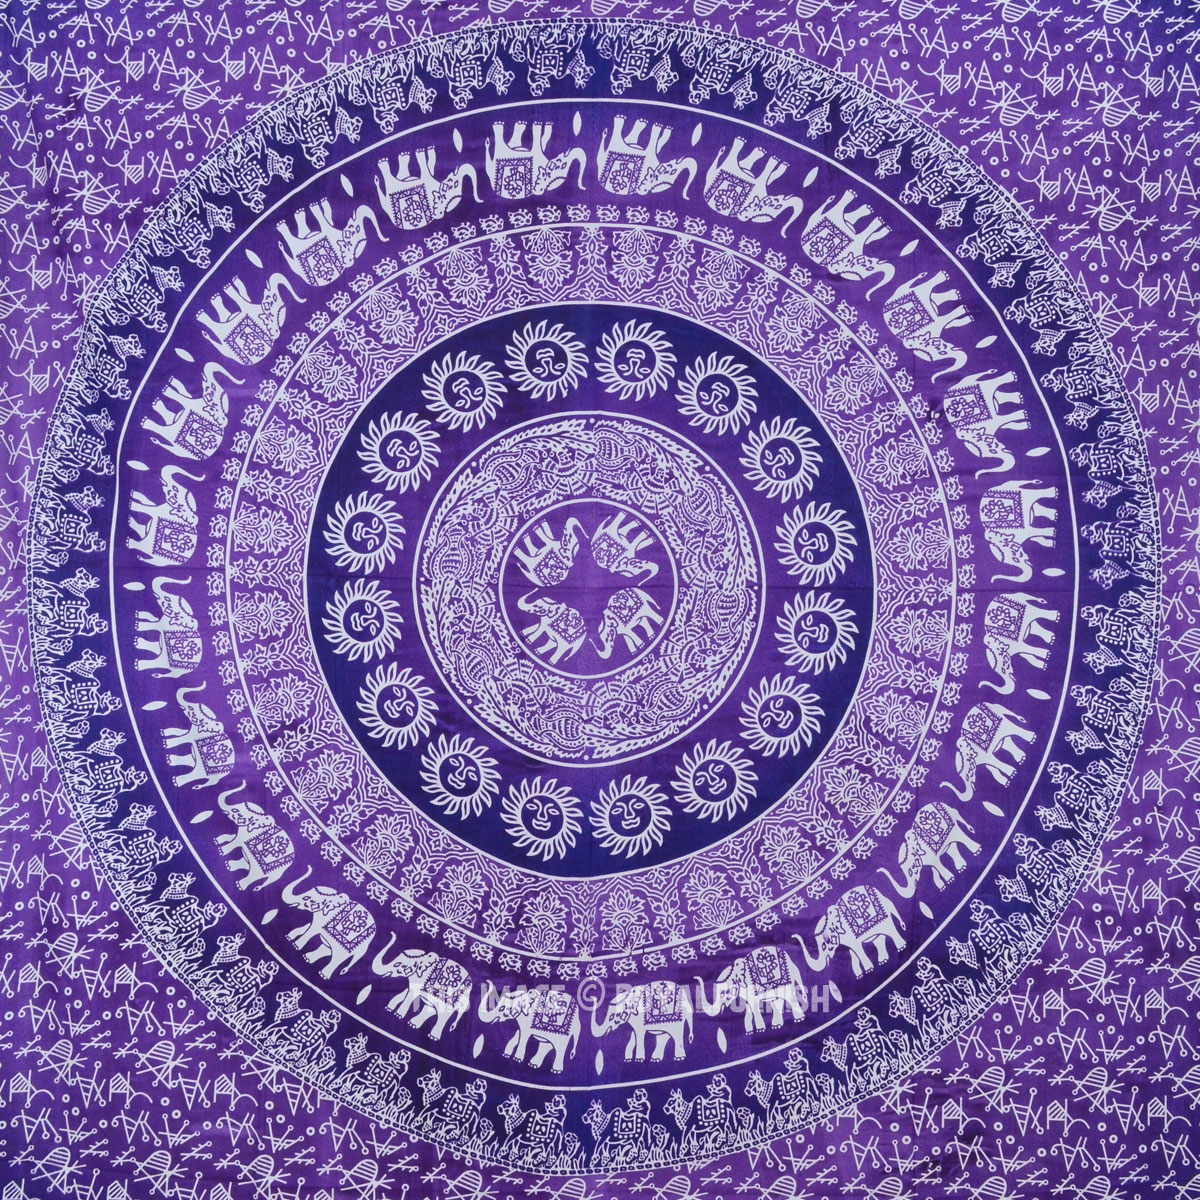 Hippie tapestry wallpaper images wall tapestries - Purple Multi Elephants Sun Ombre Mandala Wall Tapestry